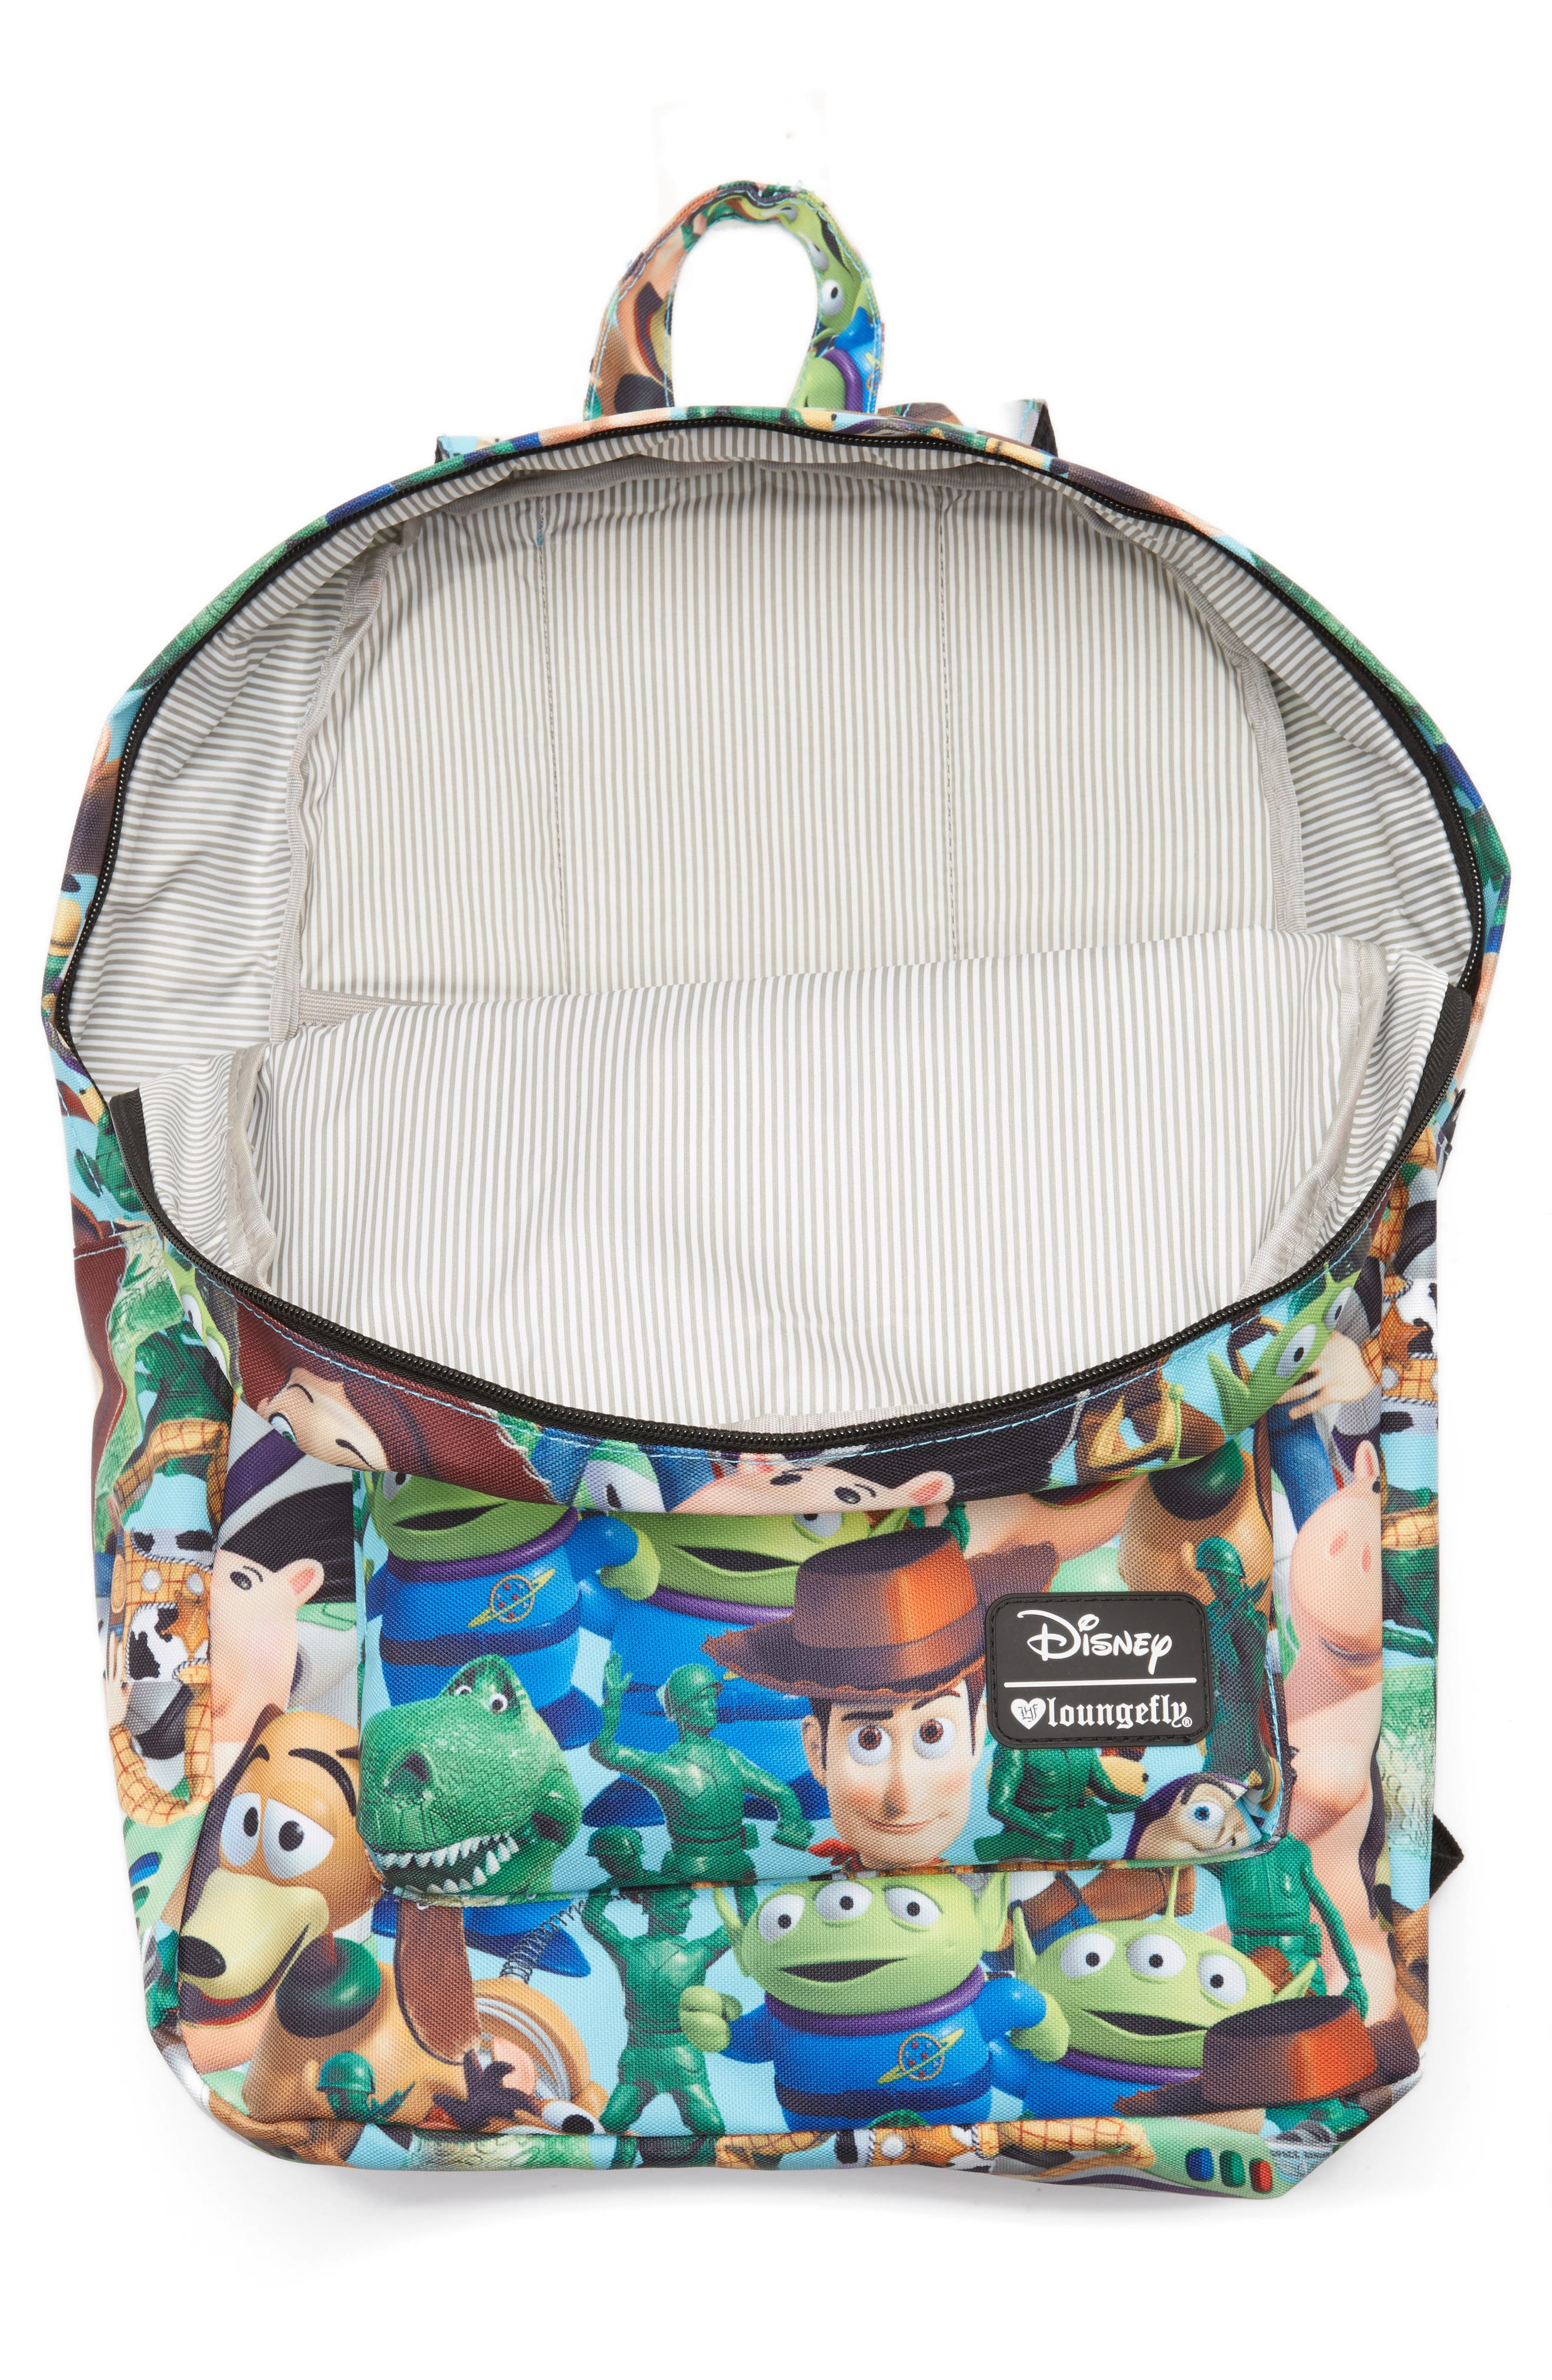 Disney<sup>®</sup> Toy Story Backpack,                             Alternate thumbnail 3, color,                             460